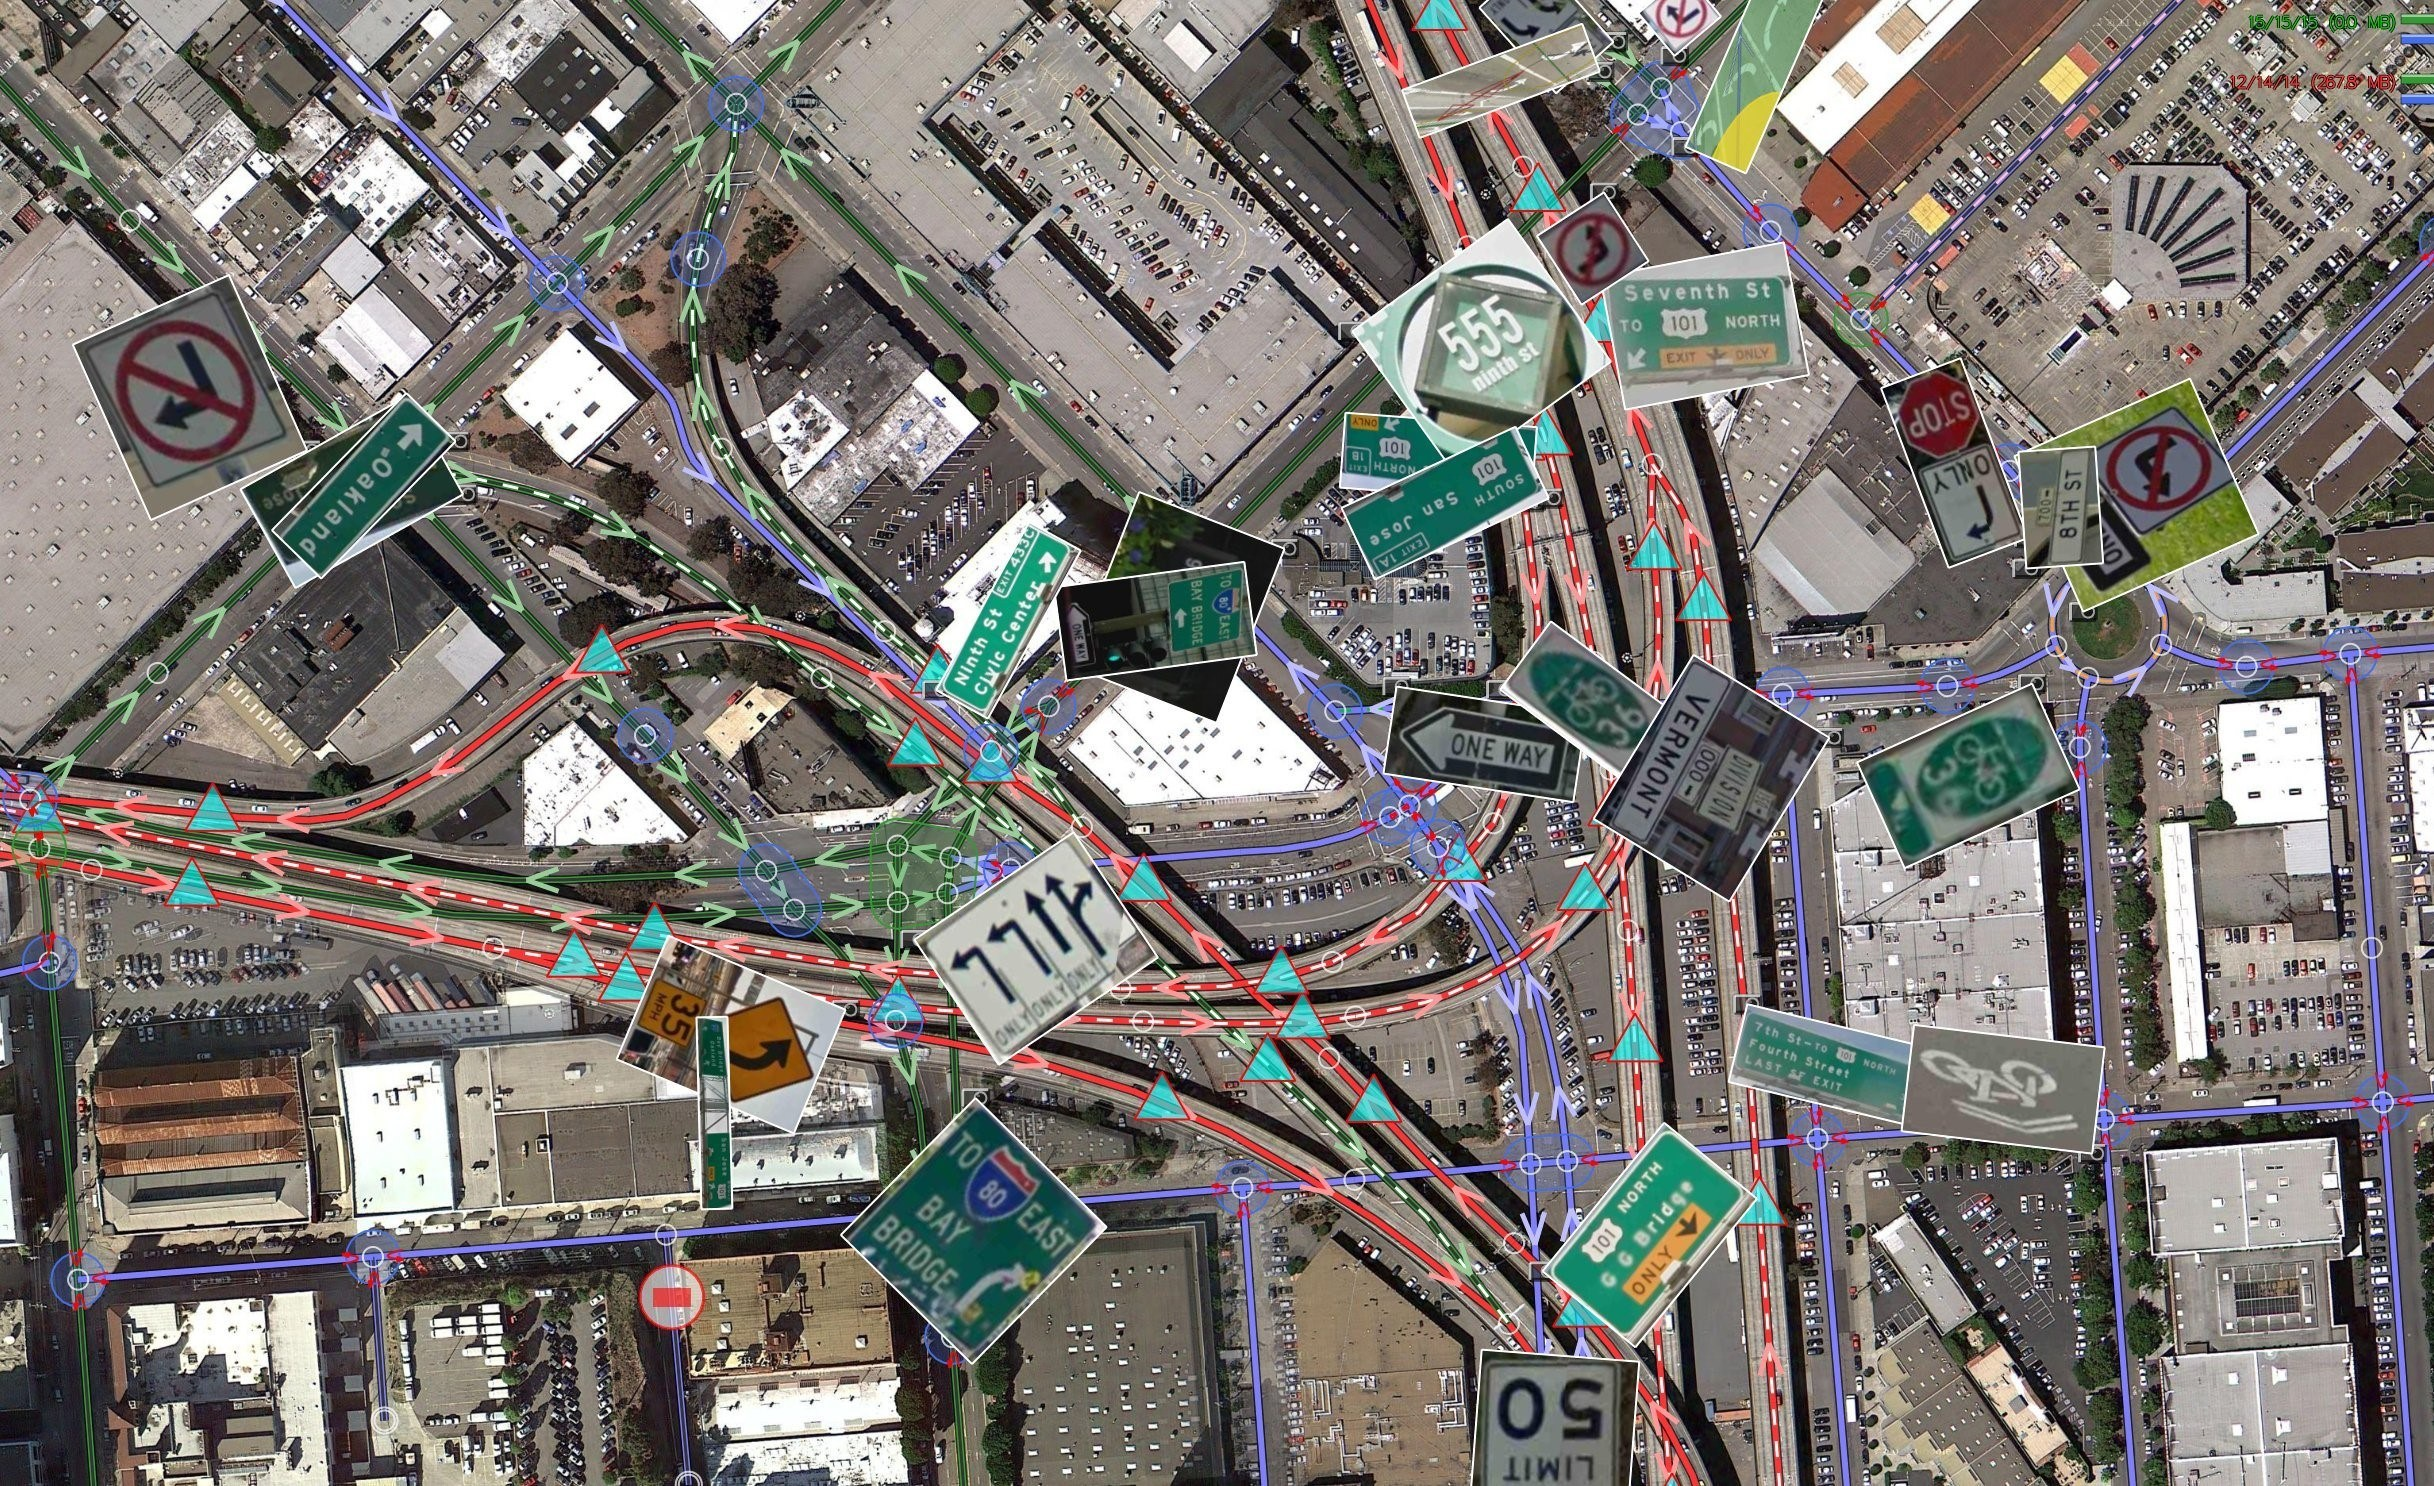 Pic 2 - Map of downtown San Francisco as created by Google Street View [2]